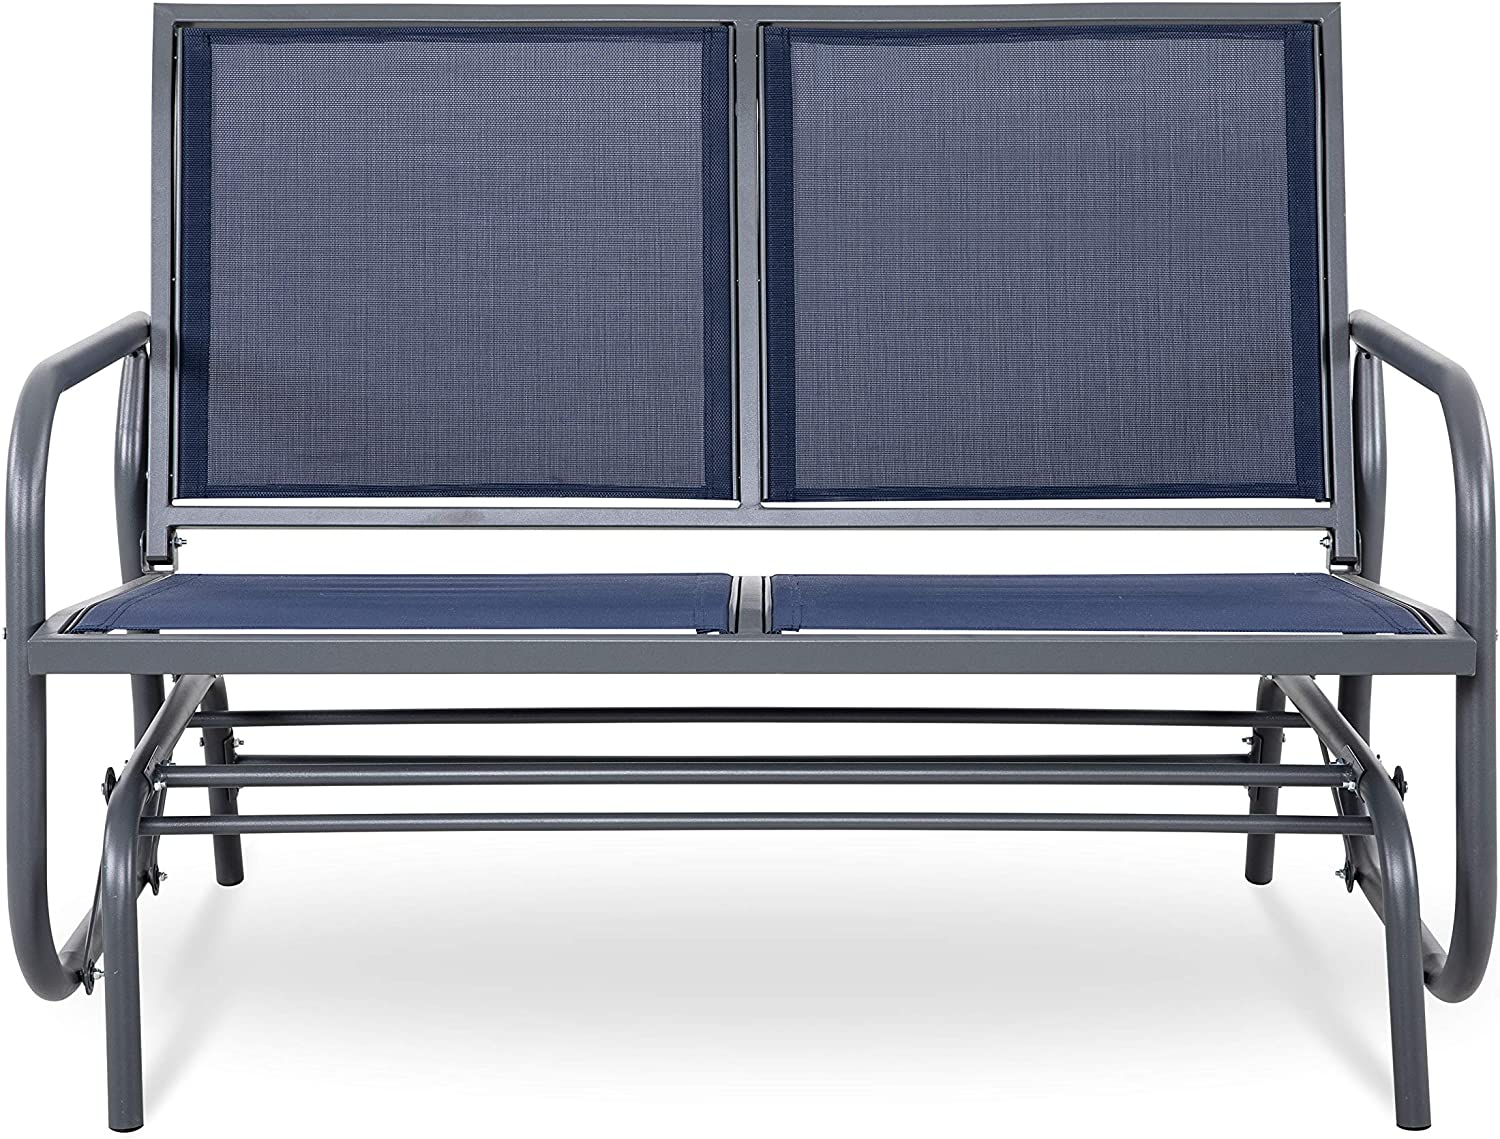 NUU GARDEN 2 Seats Outdoor Glider Swing Loveseat Chair with Powder Coated Steel Frame, Garden Rocking Seating, Patio Bench for 2 Person, Blue